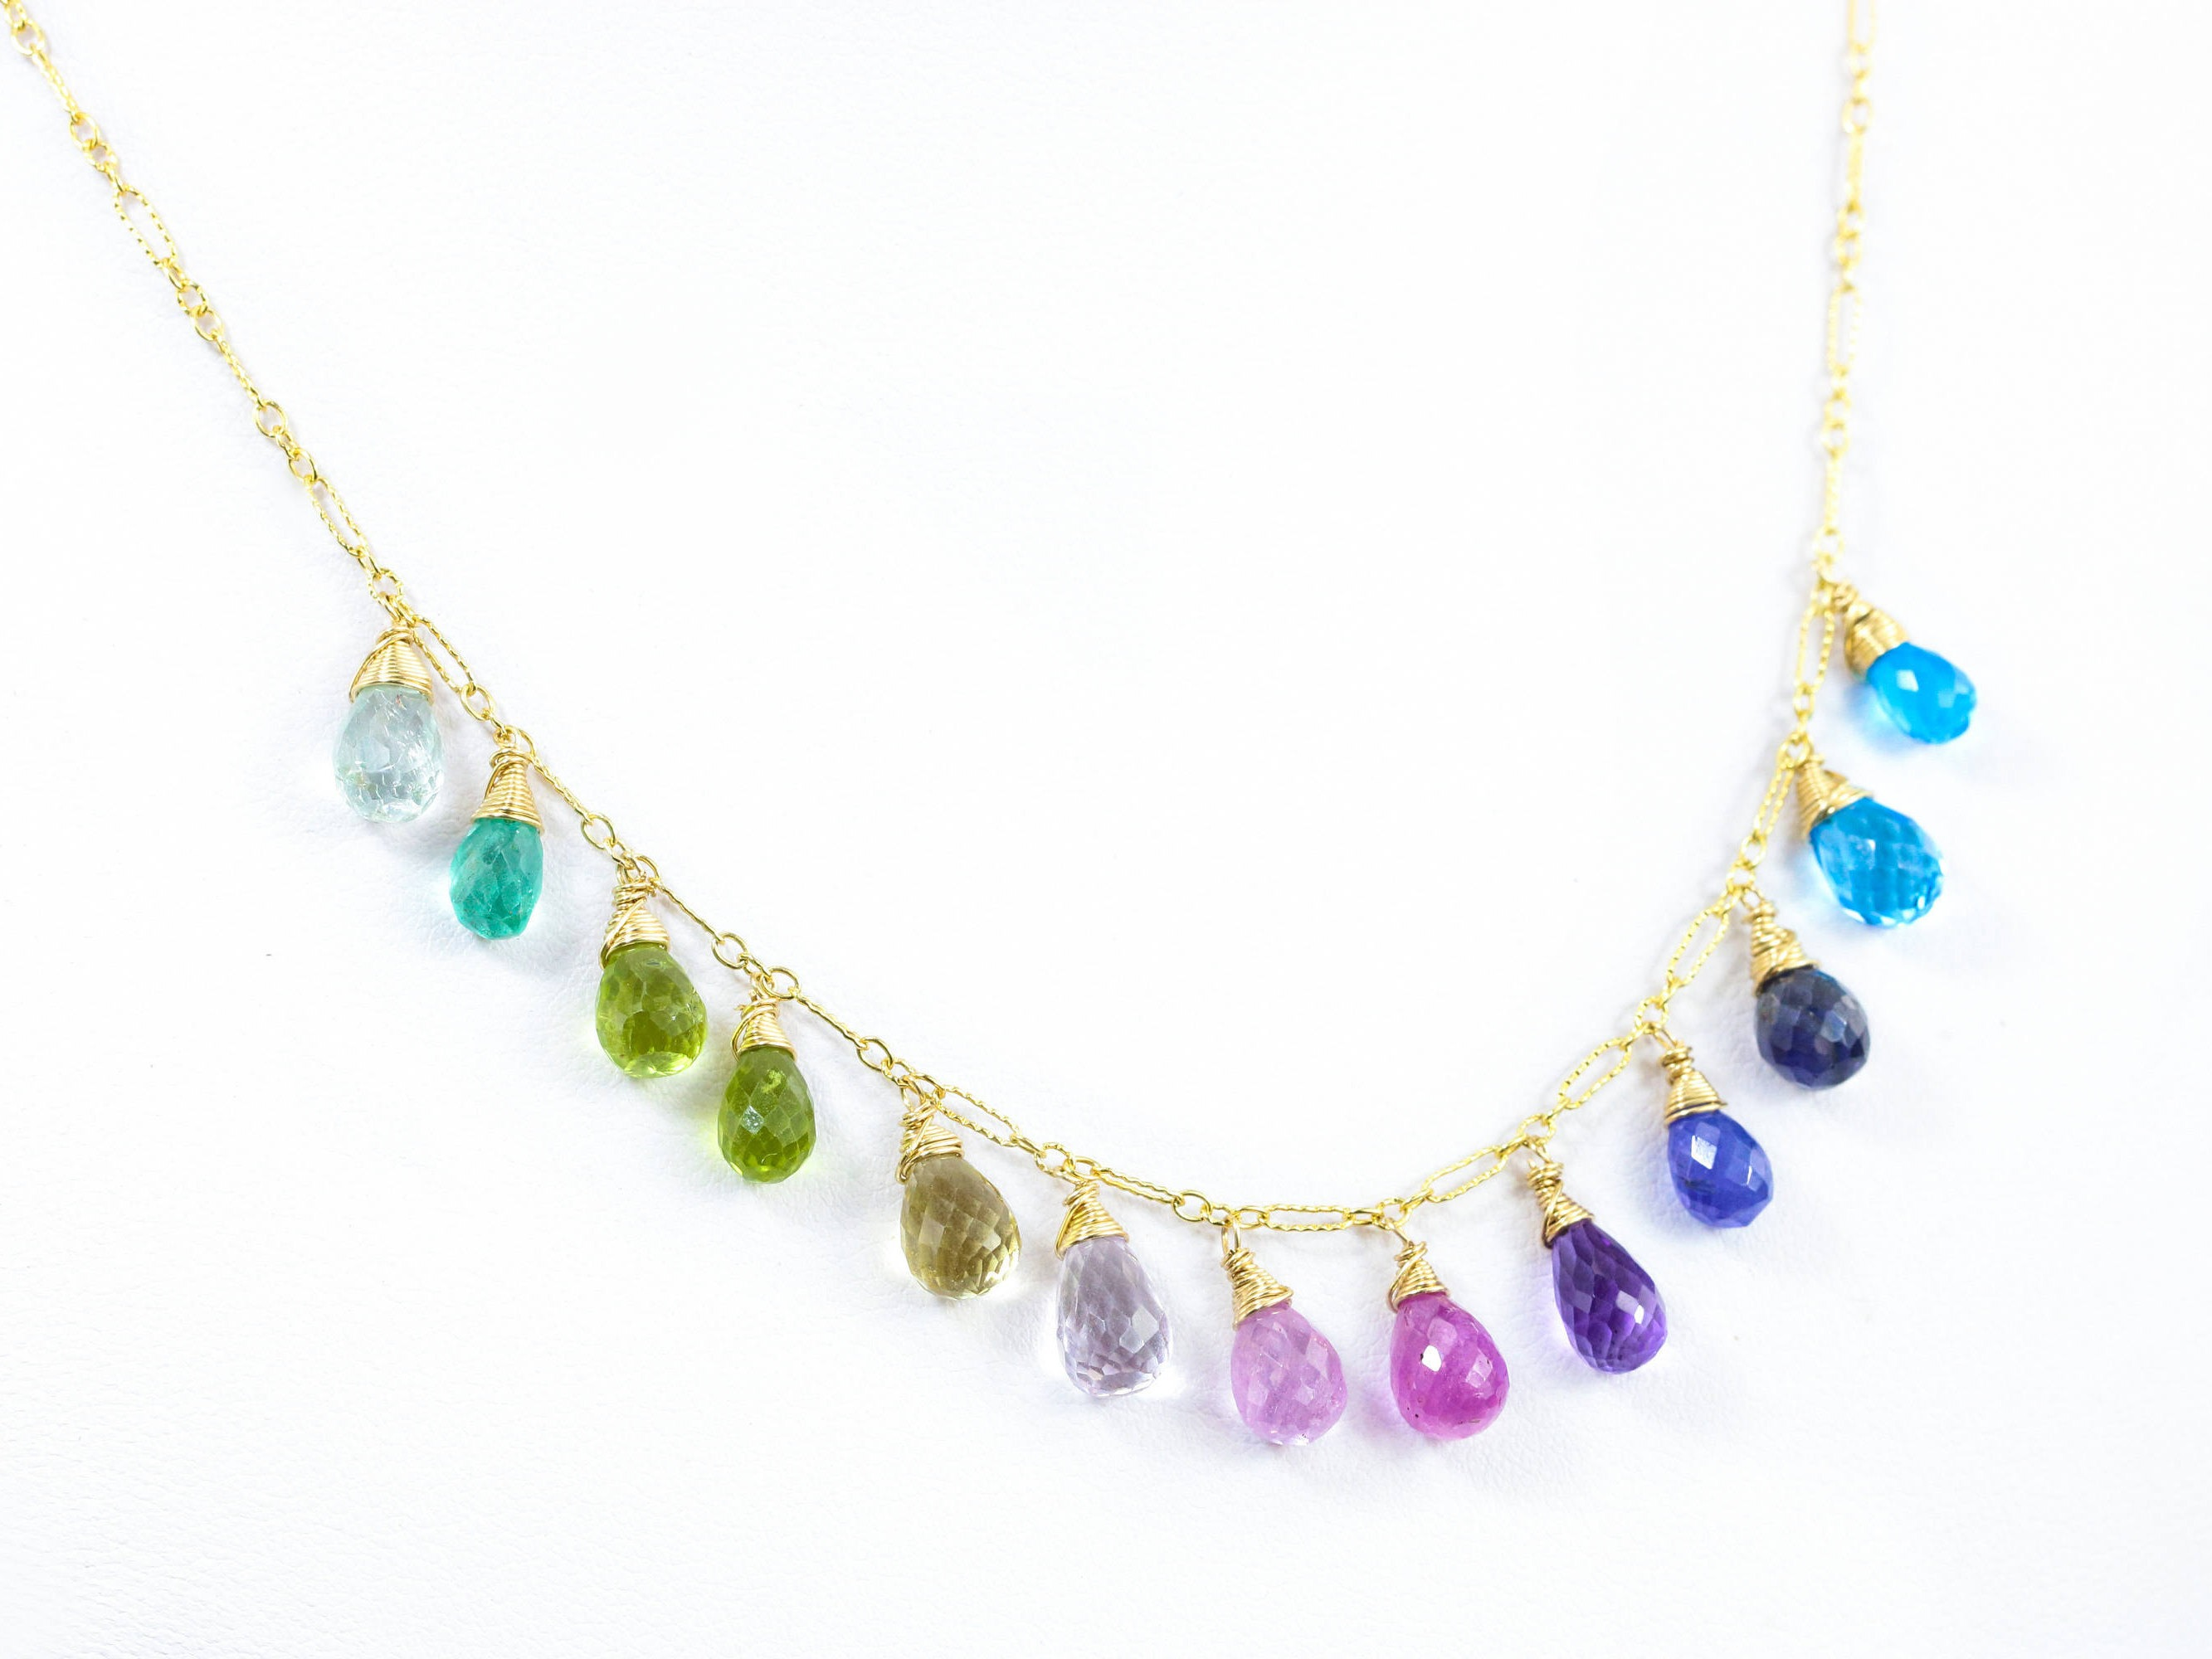 necklaces gemstone flower necklace stylezog com shop